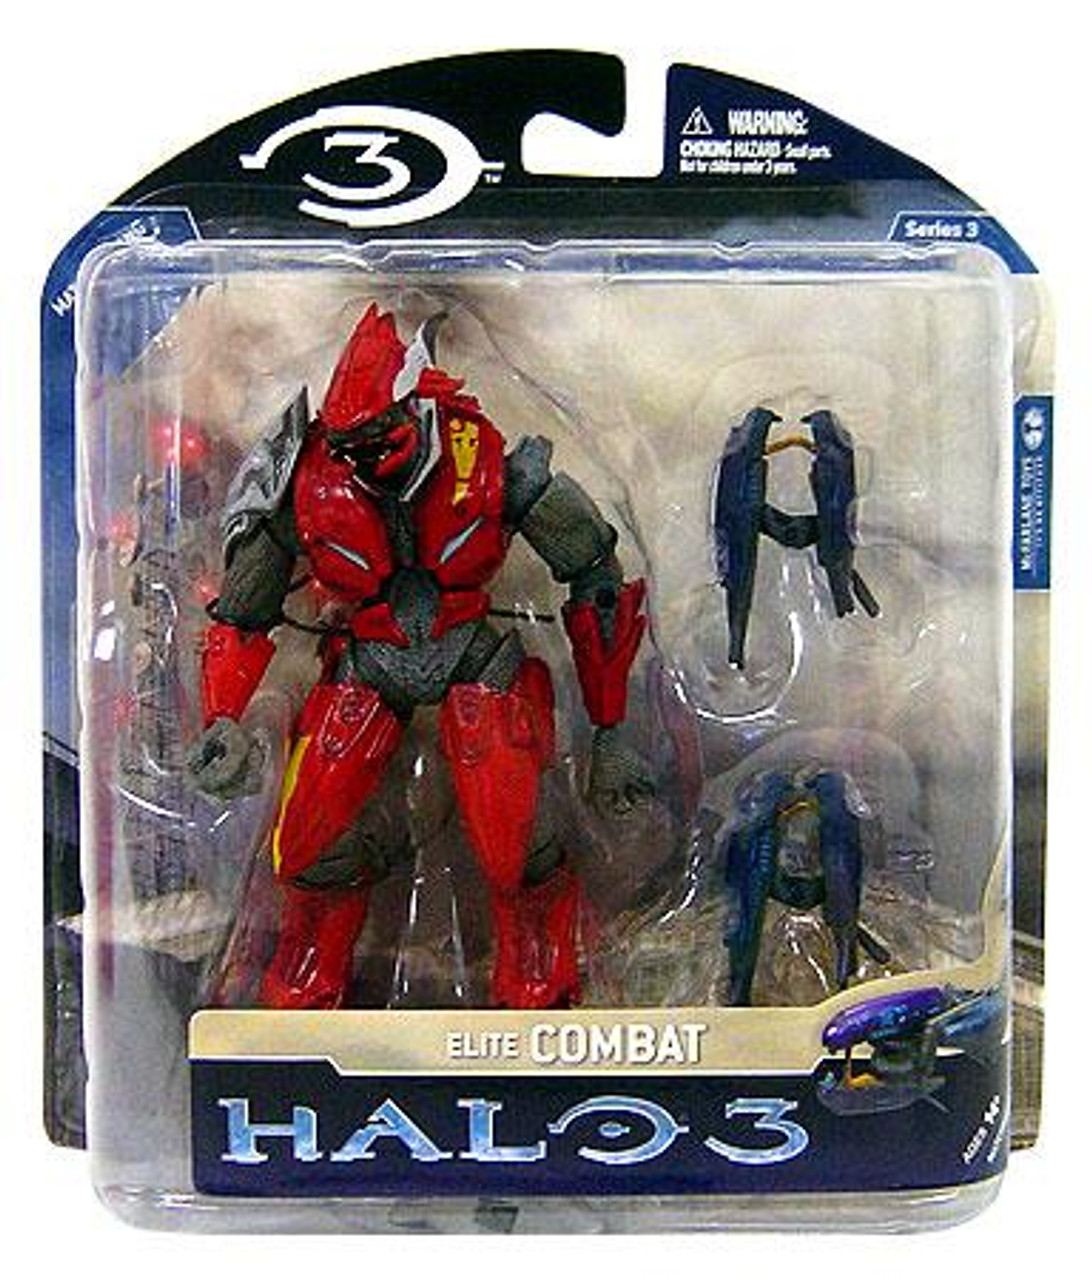 McFarlane Toys Halo 3 Series 3 Elite Combat Exclusive Action Figure [Red & Silver]